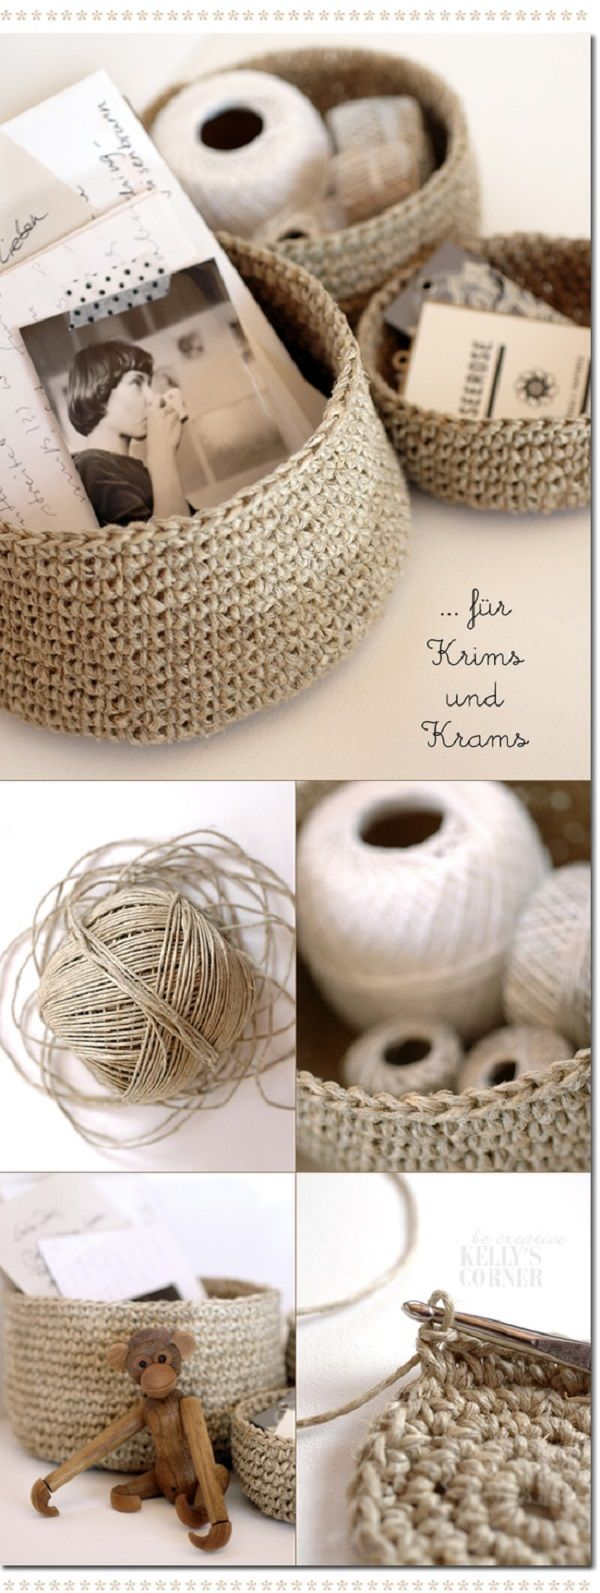 DIY Crochet baskets with twine  Baskets, rugs, hammocks, lamps & shades.  Guess this is where I cal in favors from a crocheter.dse